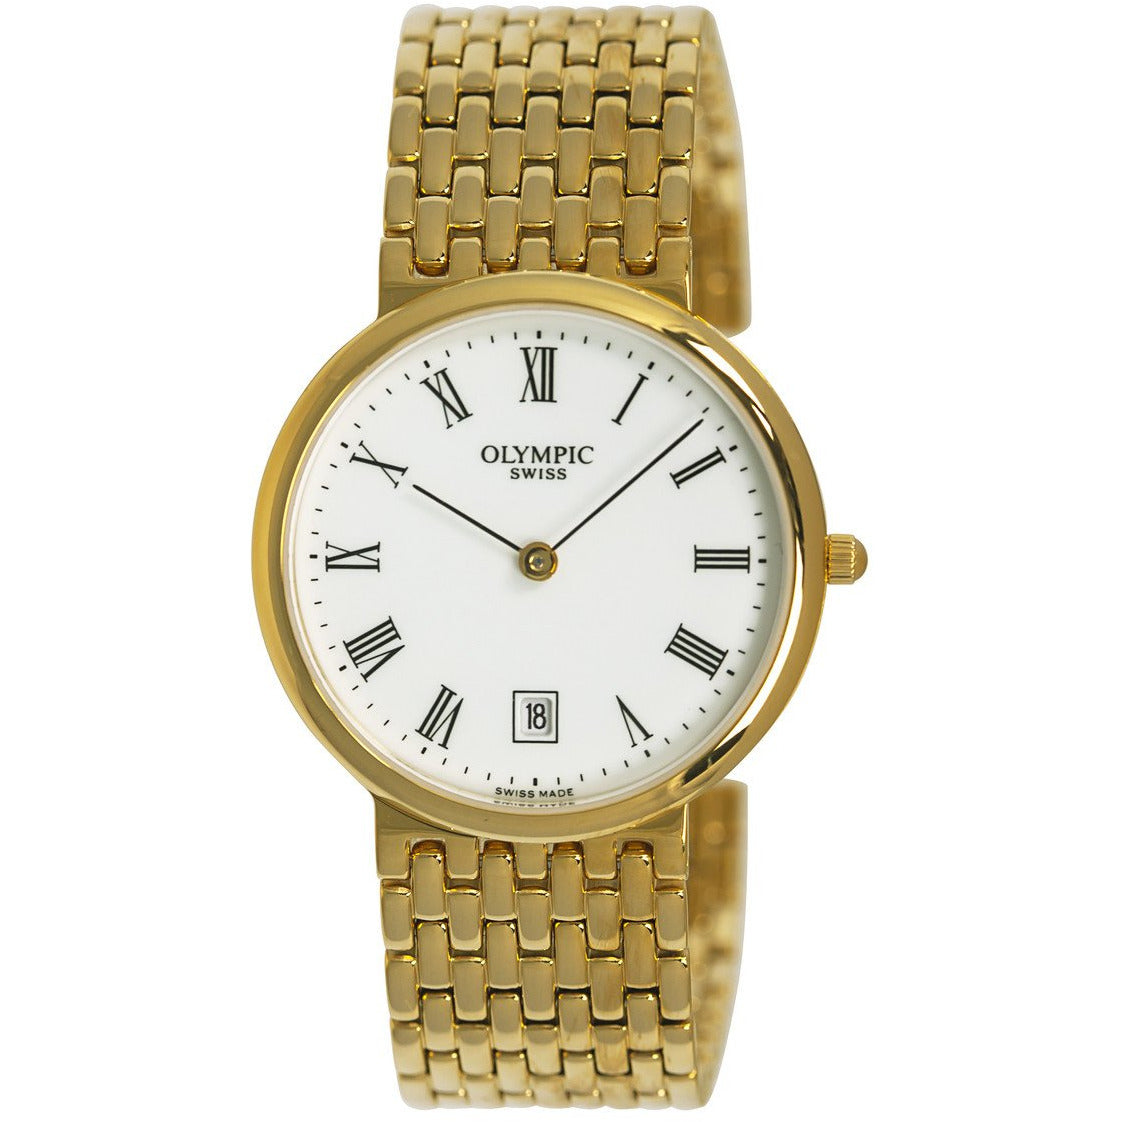 Genuine Unisex Swiss Watch